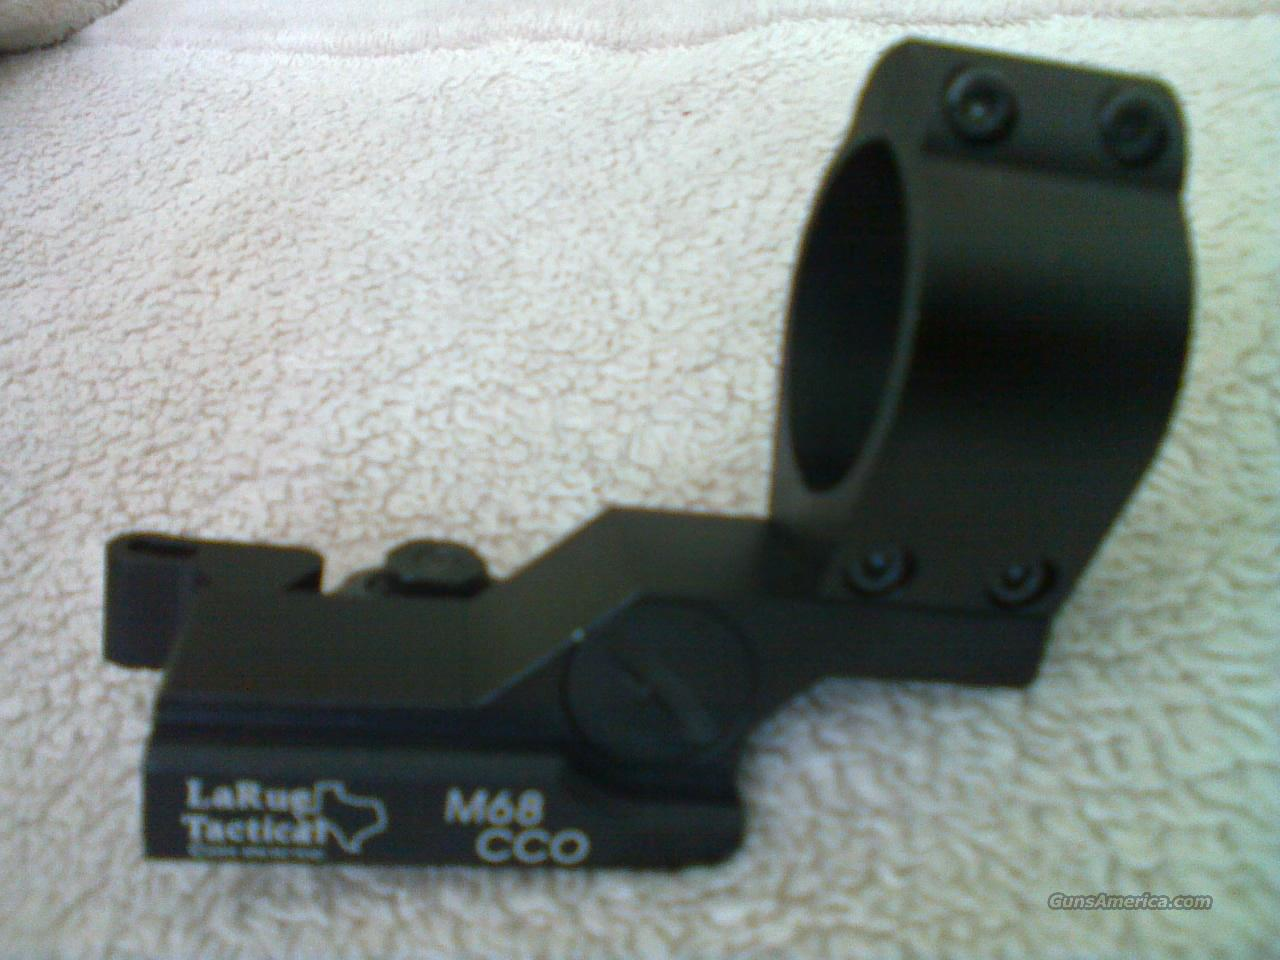 Larue Cantilever CompM Aimpoint 30MM Mount LT129 LT-129  Non-Guns > Scopes/Mounts/Rings & Optics > Mounts > Other